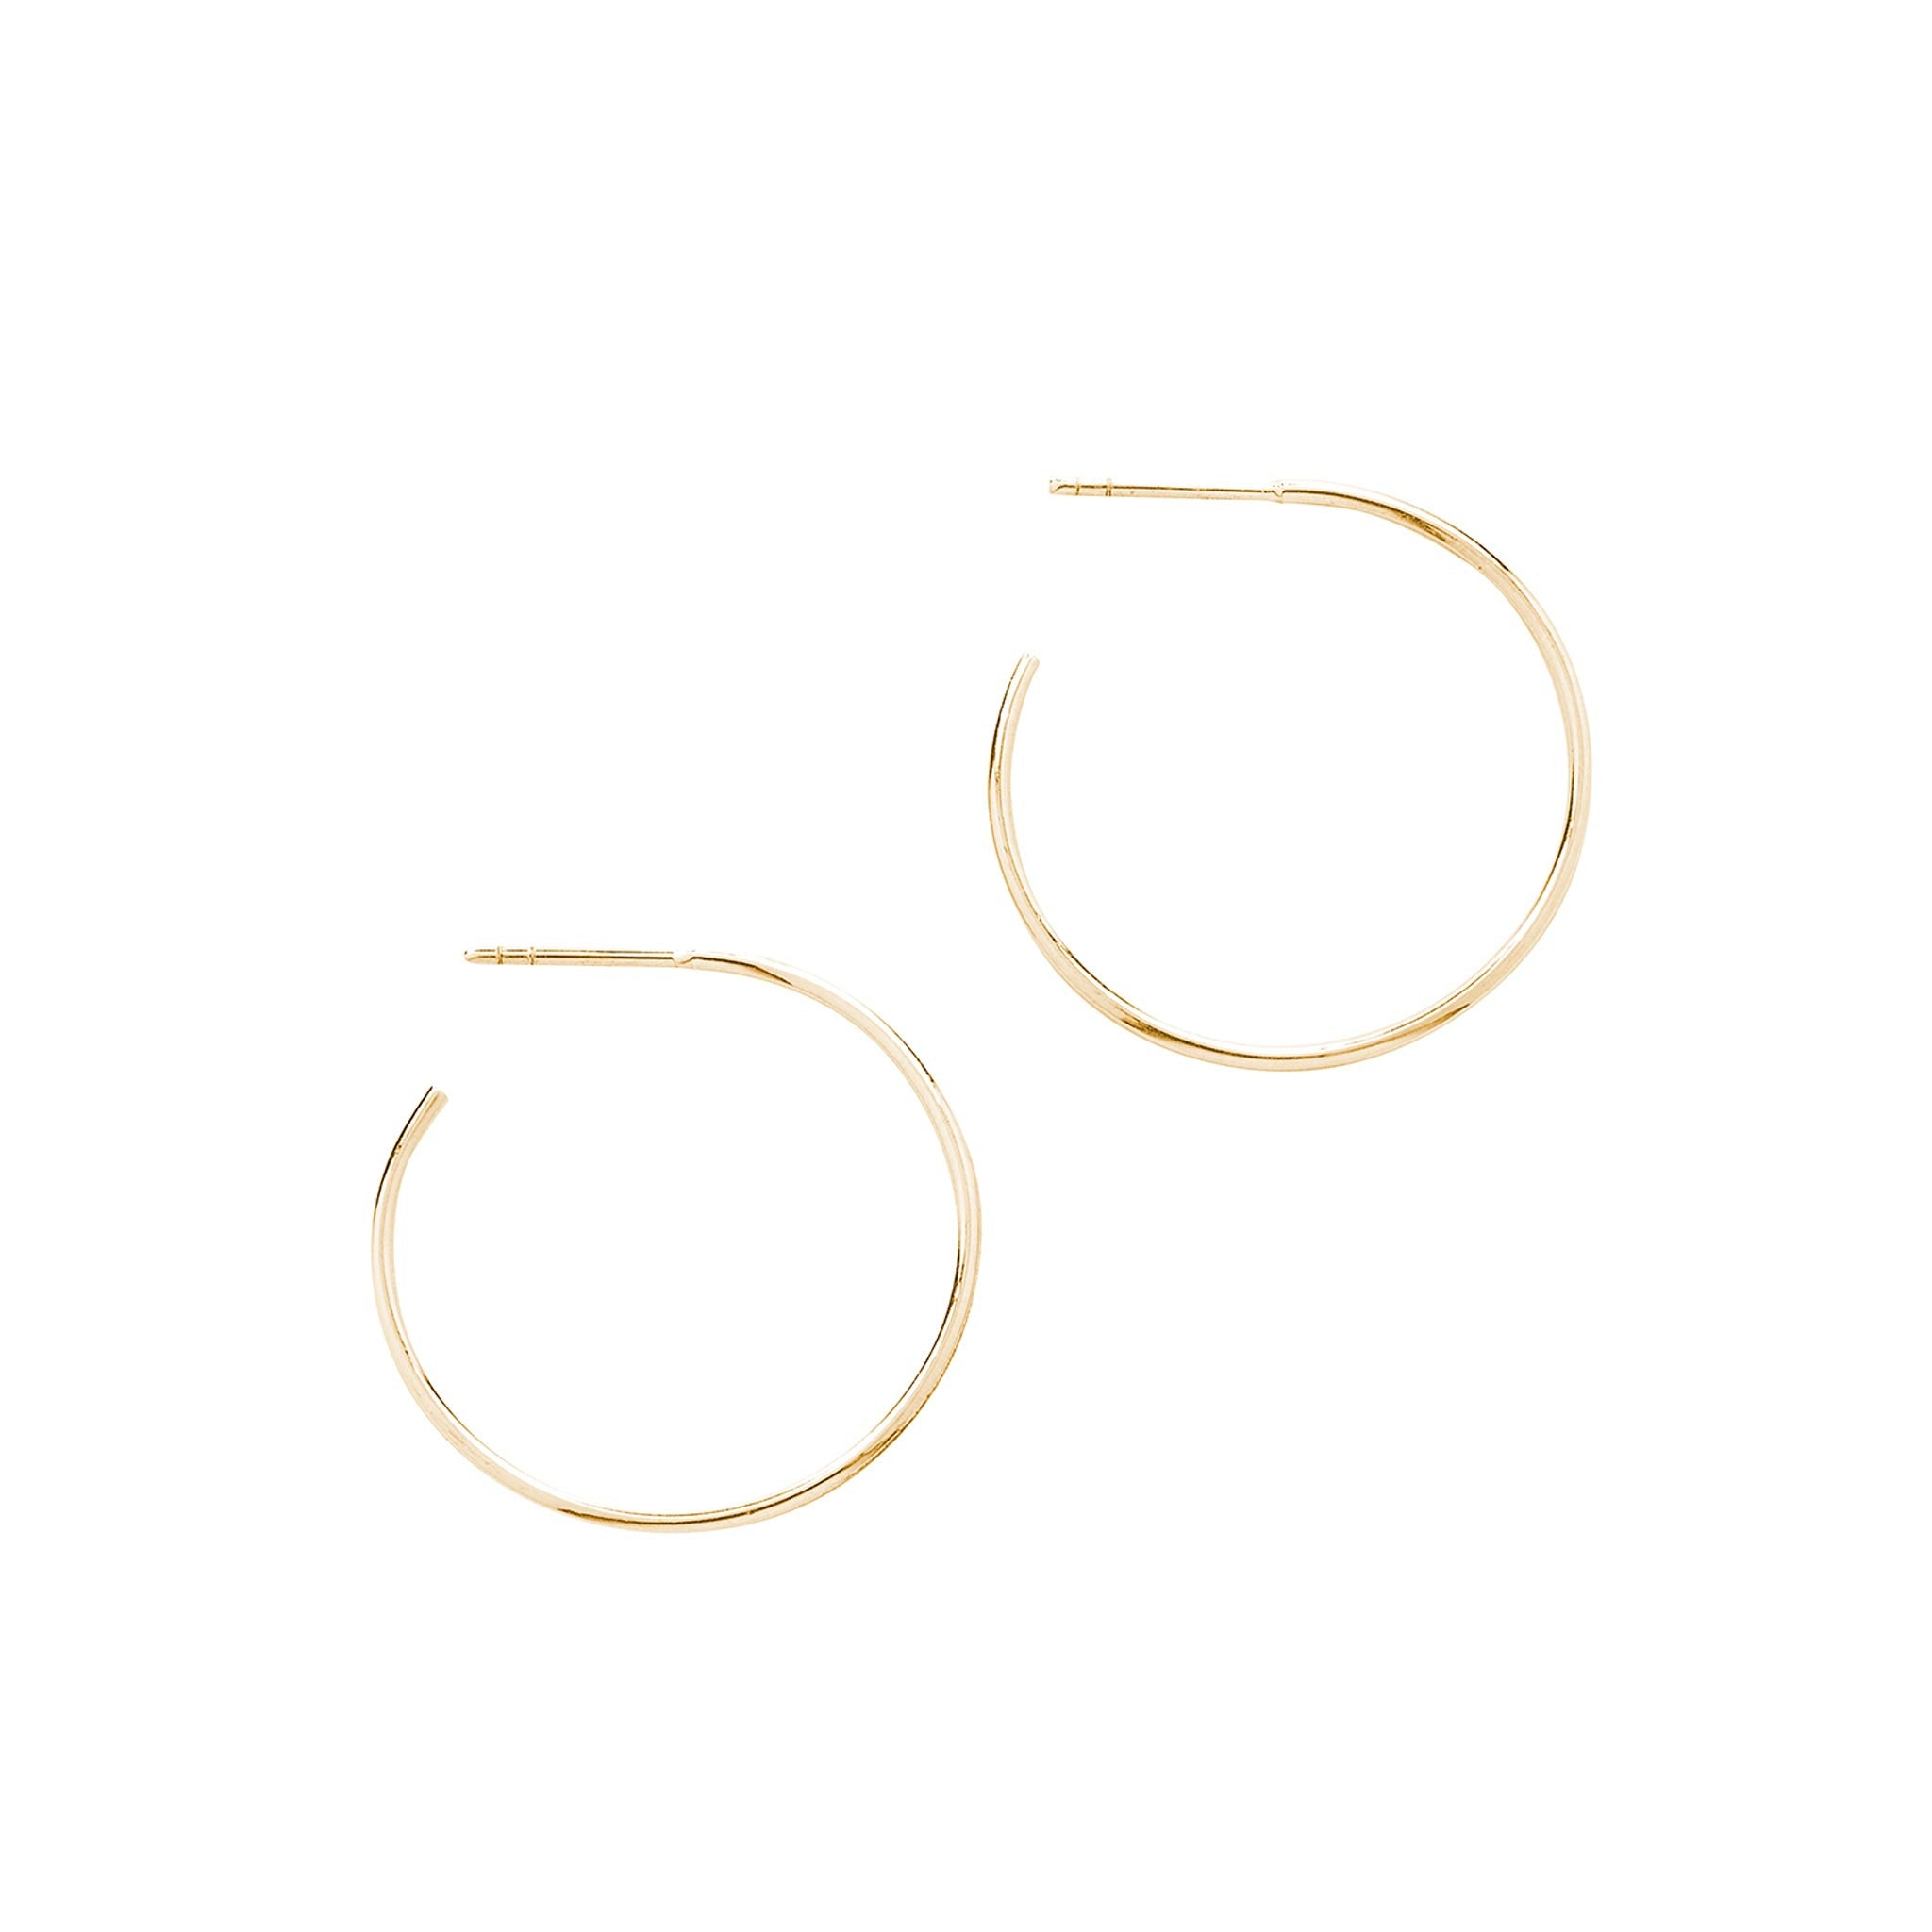 14k solid gold hoop earrings